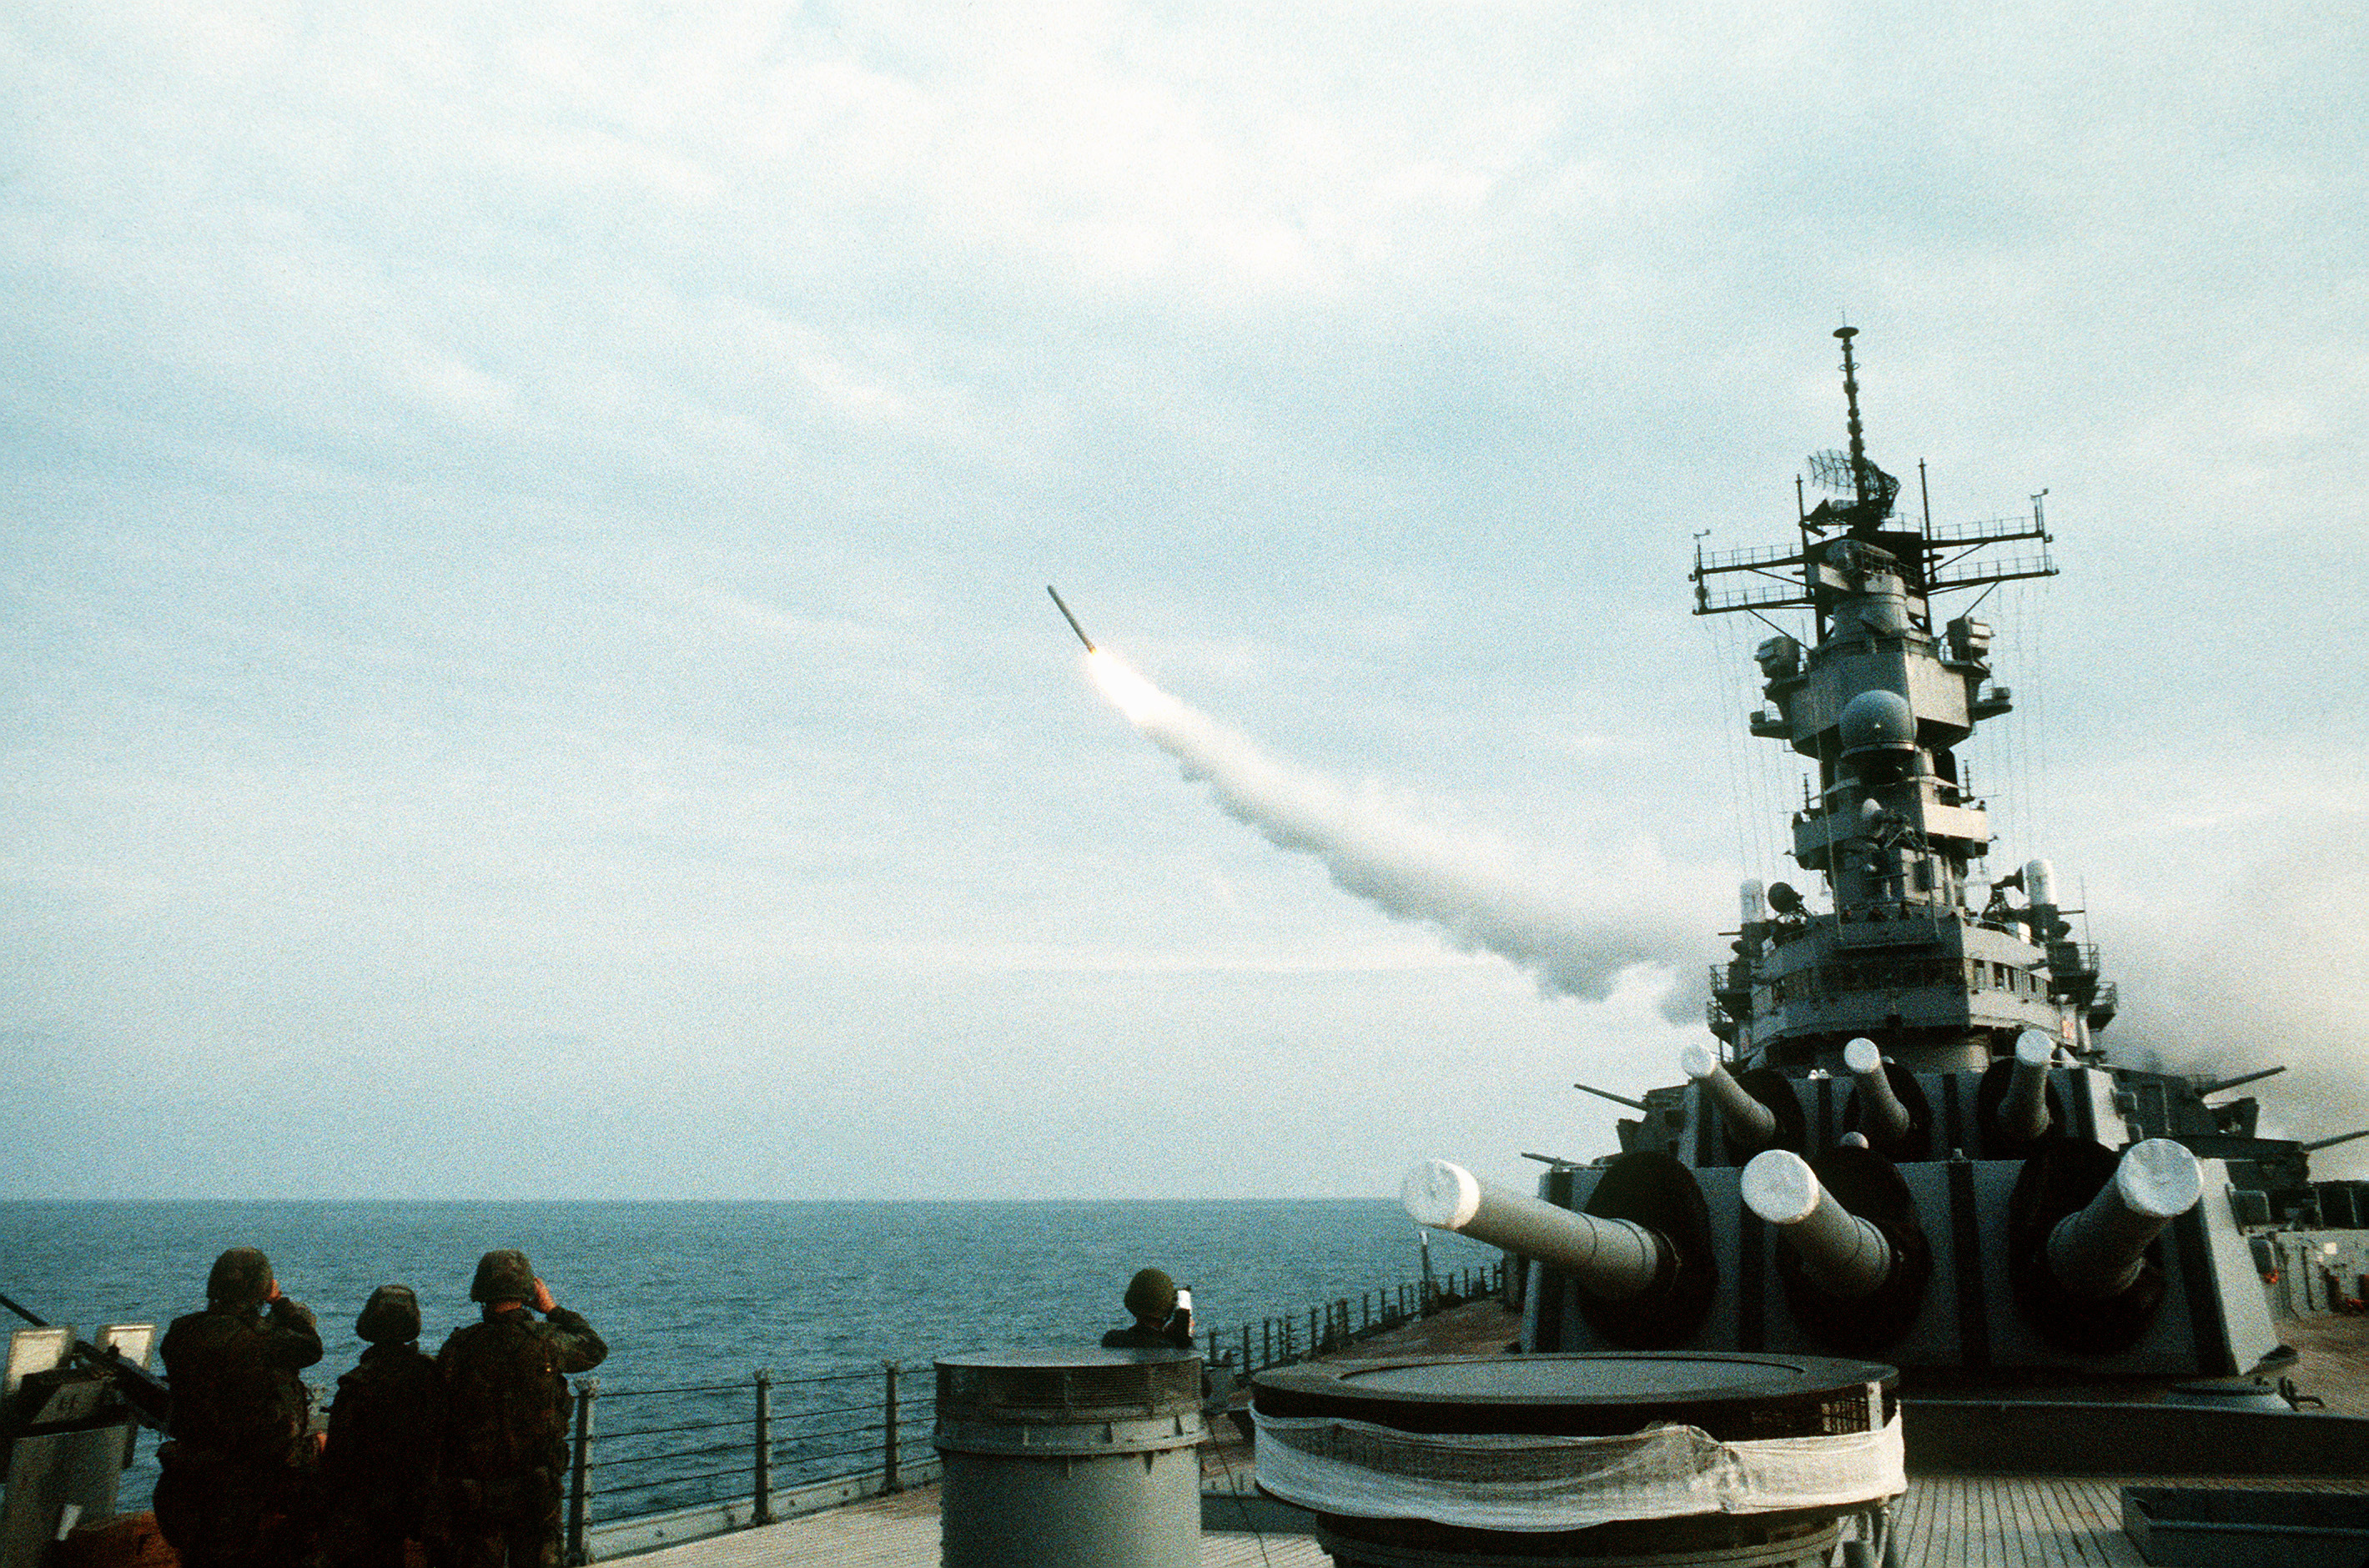 military Navy battleship missiles HD Wallpaper